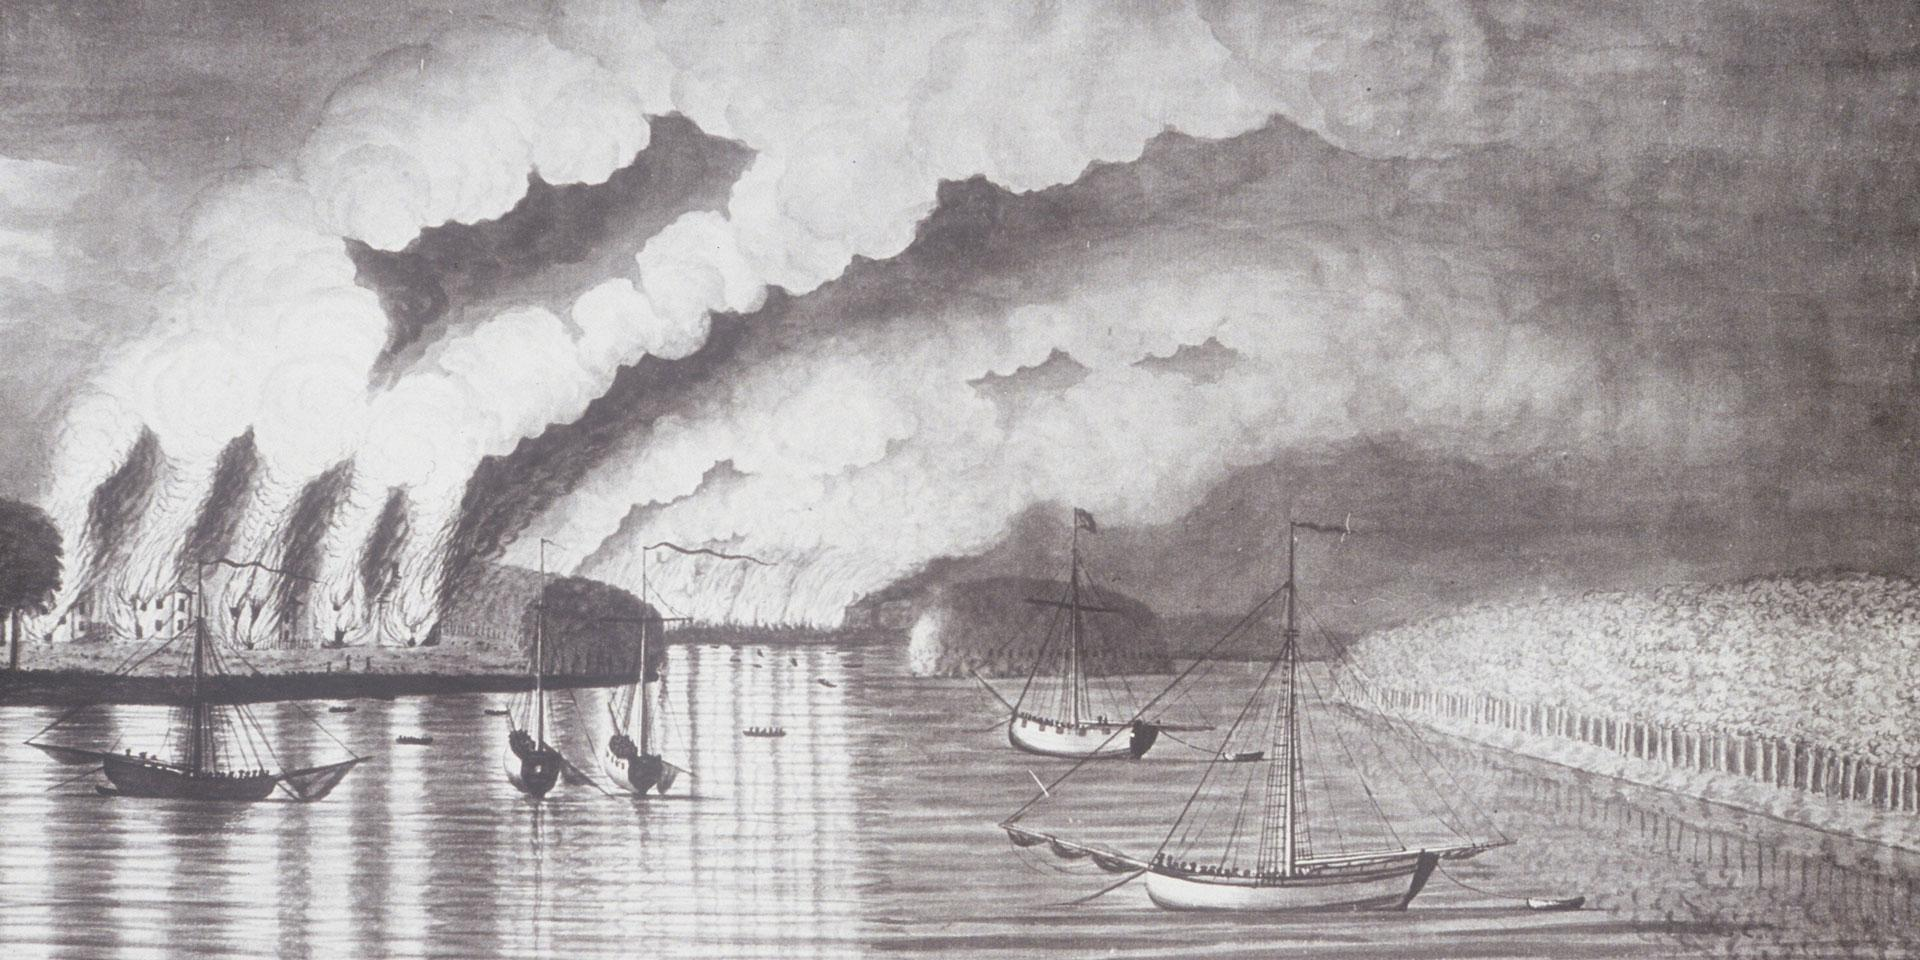 'A View of the Plundering and Burning of the City of Grimross', by Captain Thomas Davies, 1758